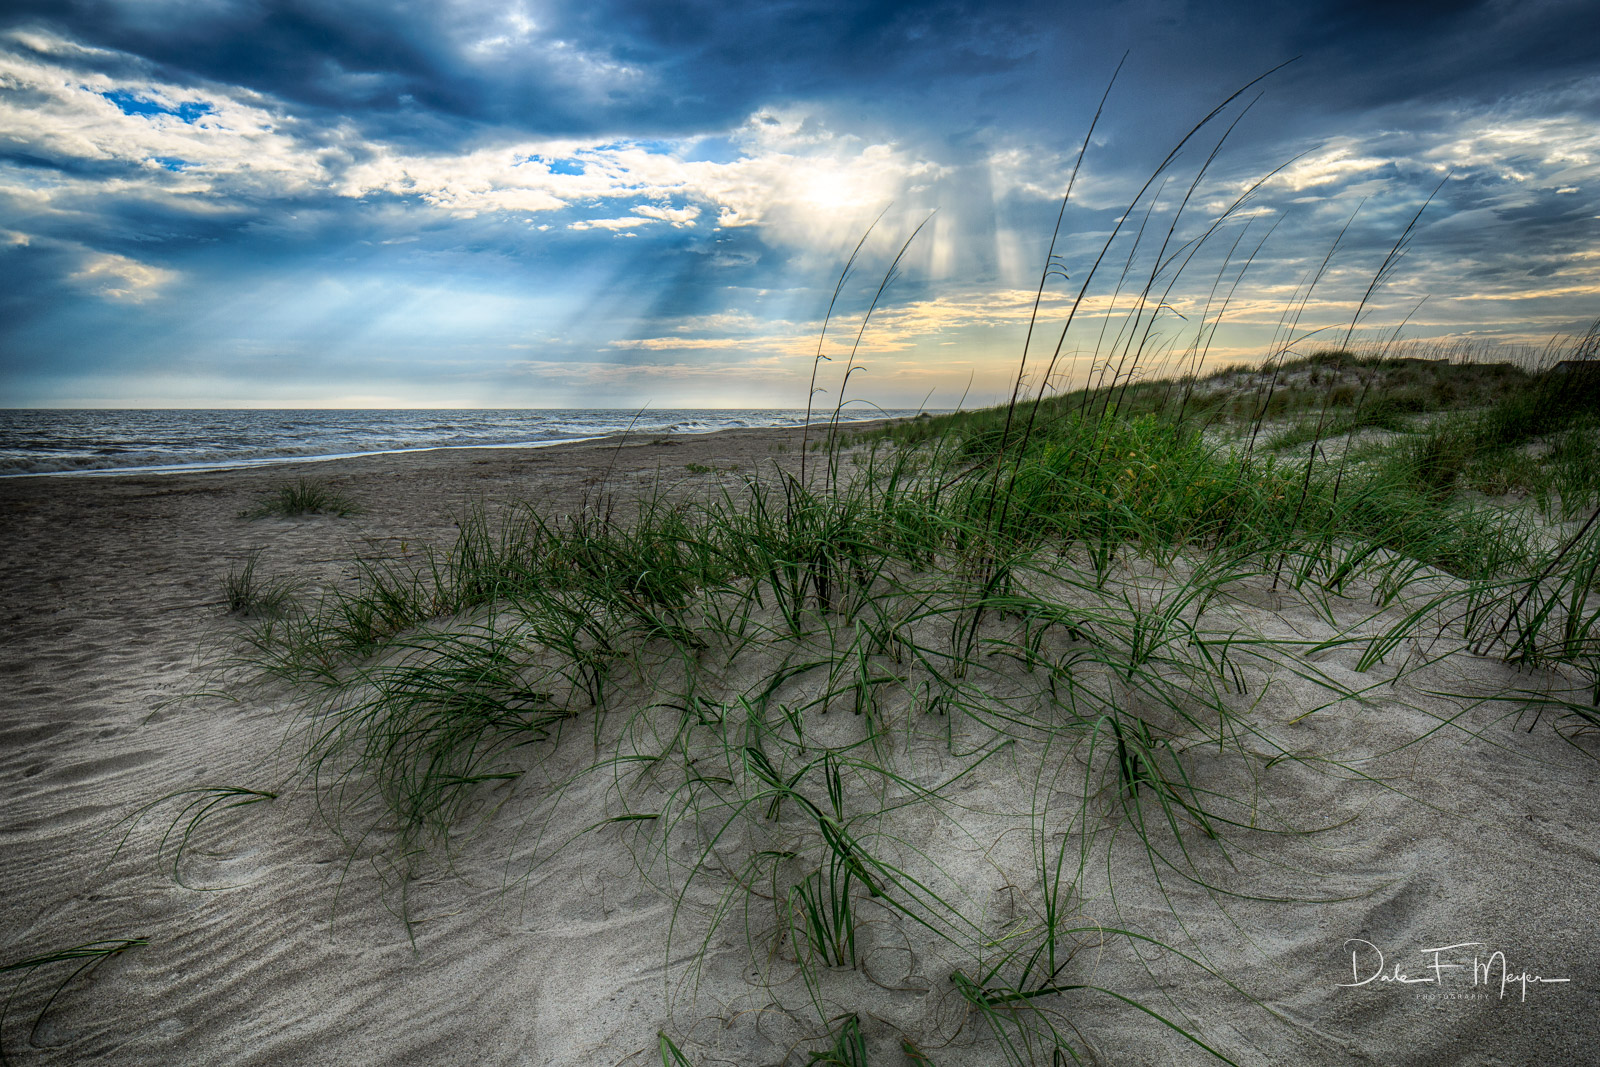 Coastal Photos from the Eastern Seaboard Gallery, Crepuscular rays, Oak Island dunes, Sand Dune, Sea Grass, photo